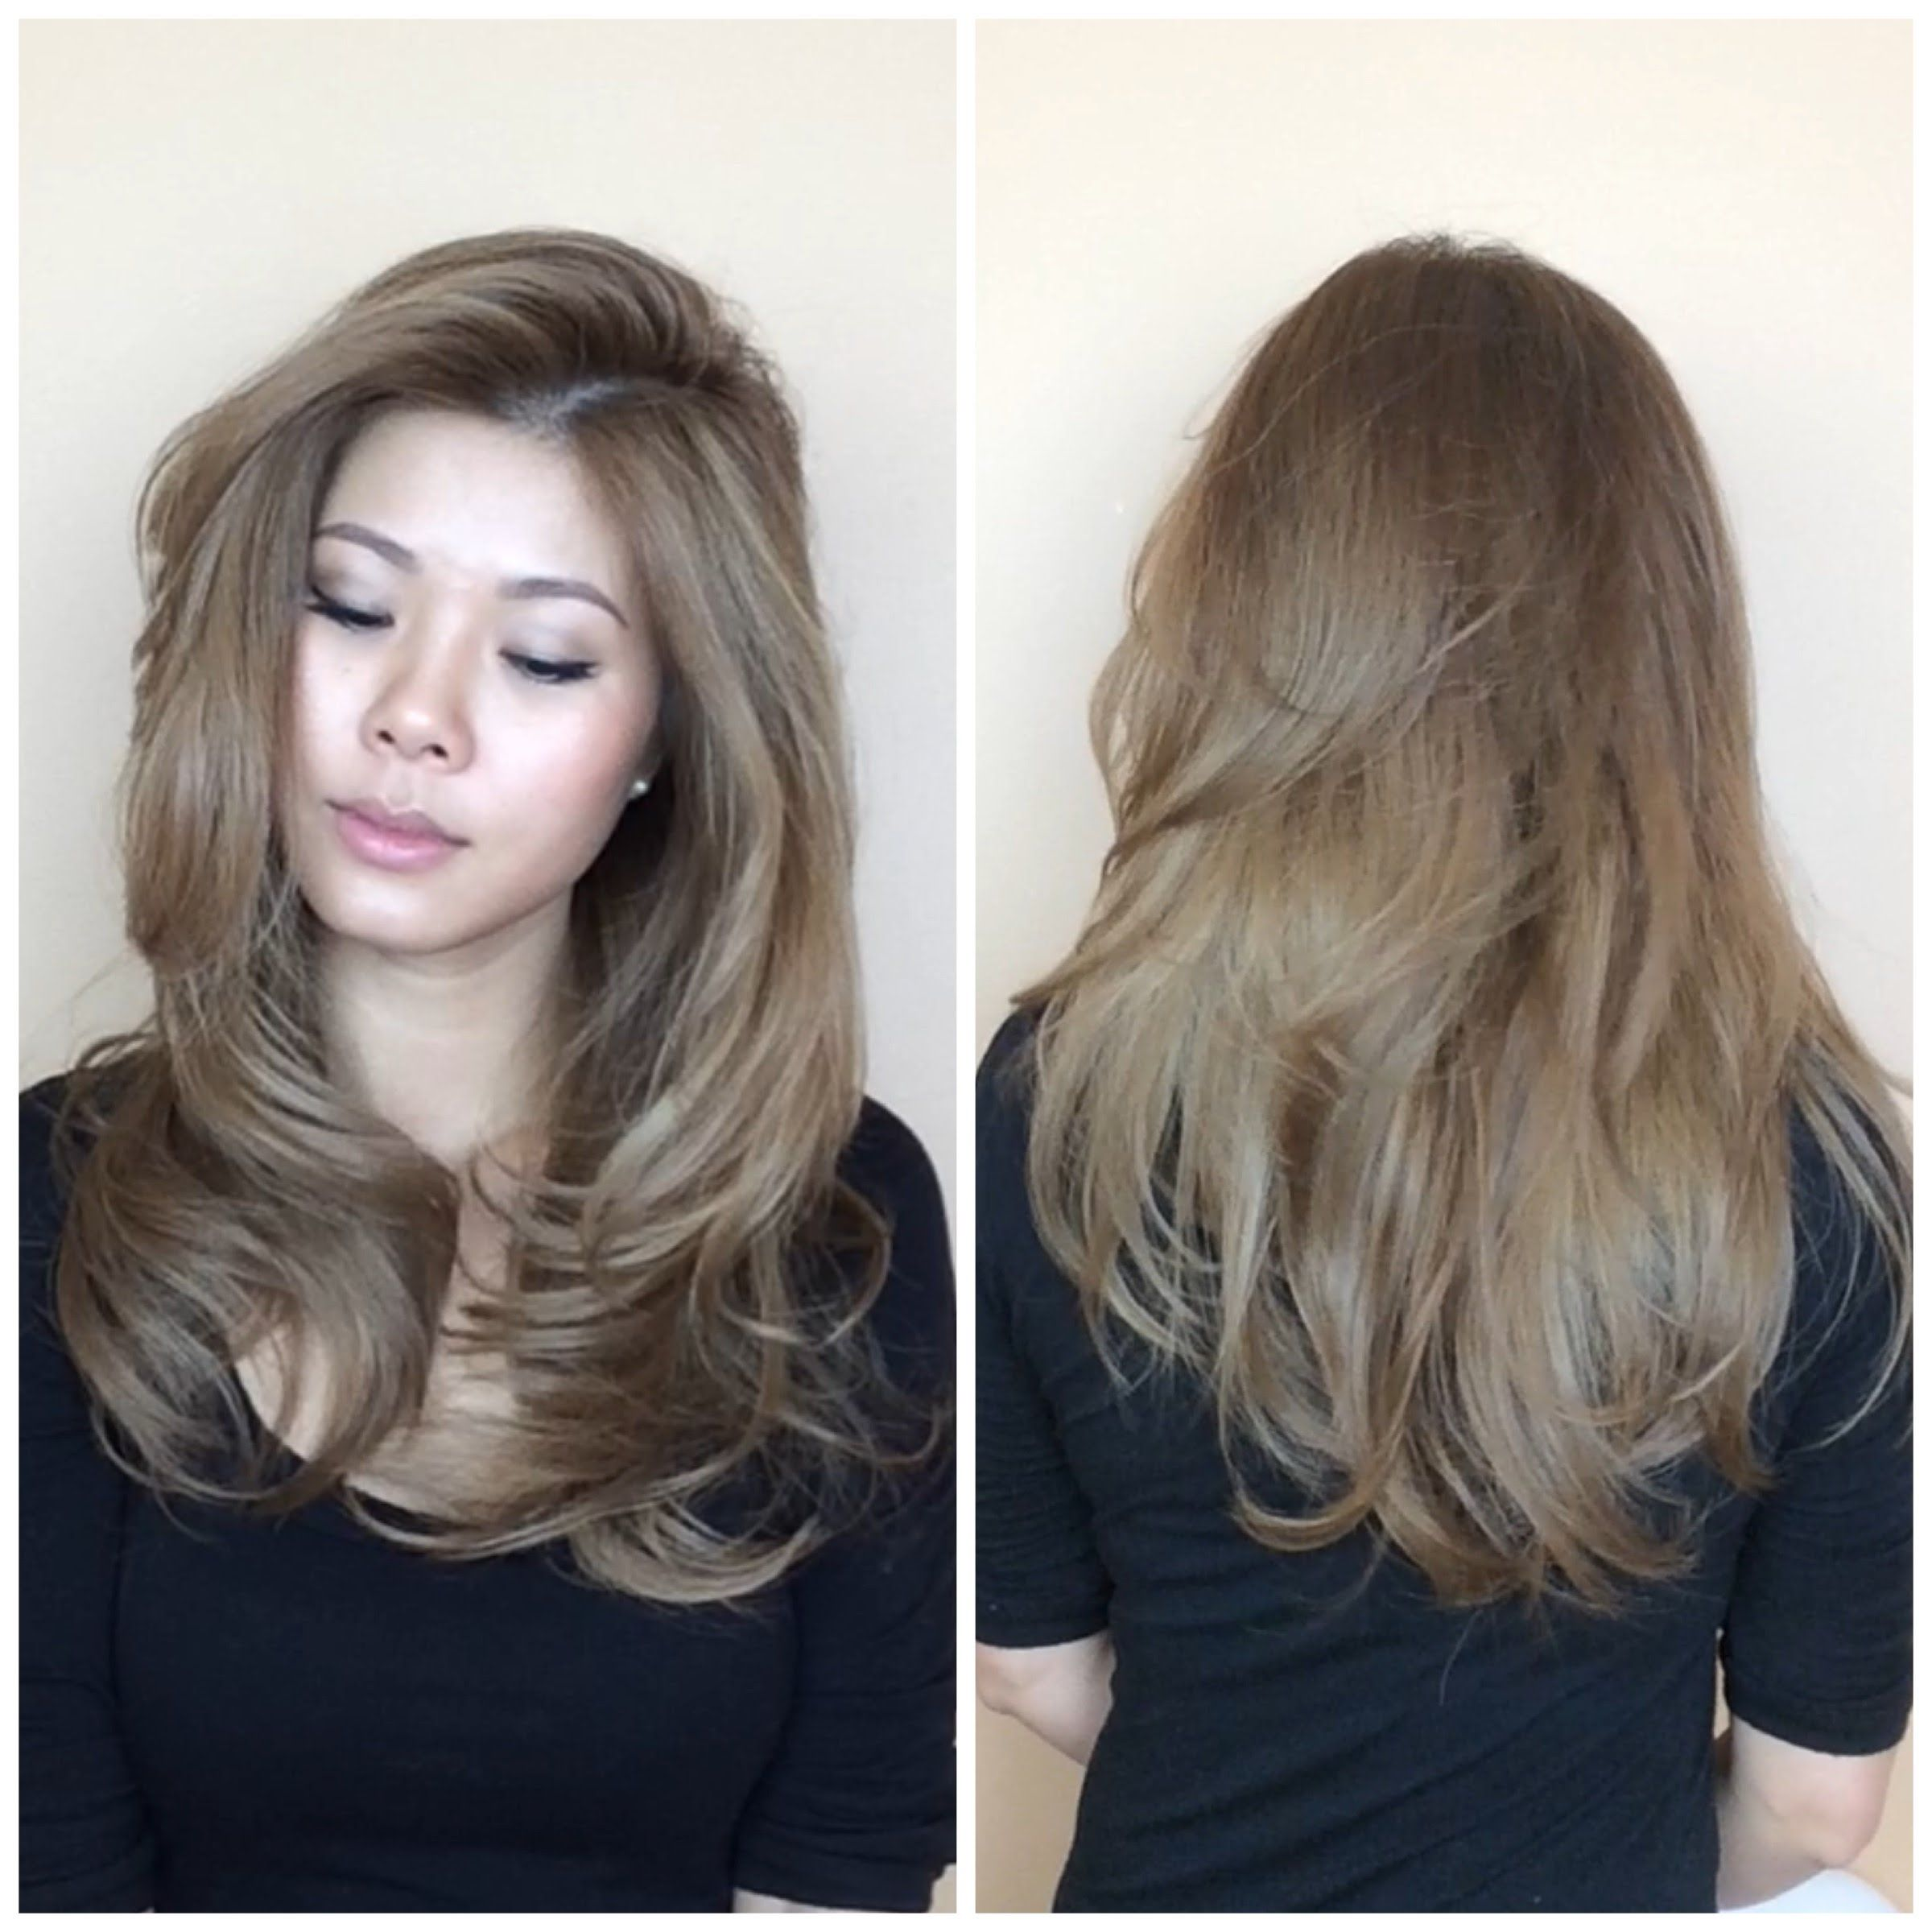 How To Blow Dry Your Hair For Volume Blow Dry Hair Dry Curly Hair Dry Long Hair